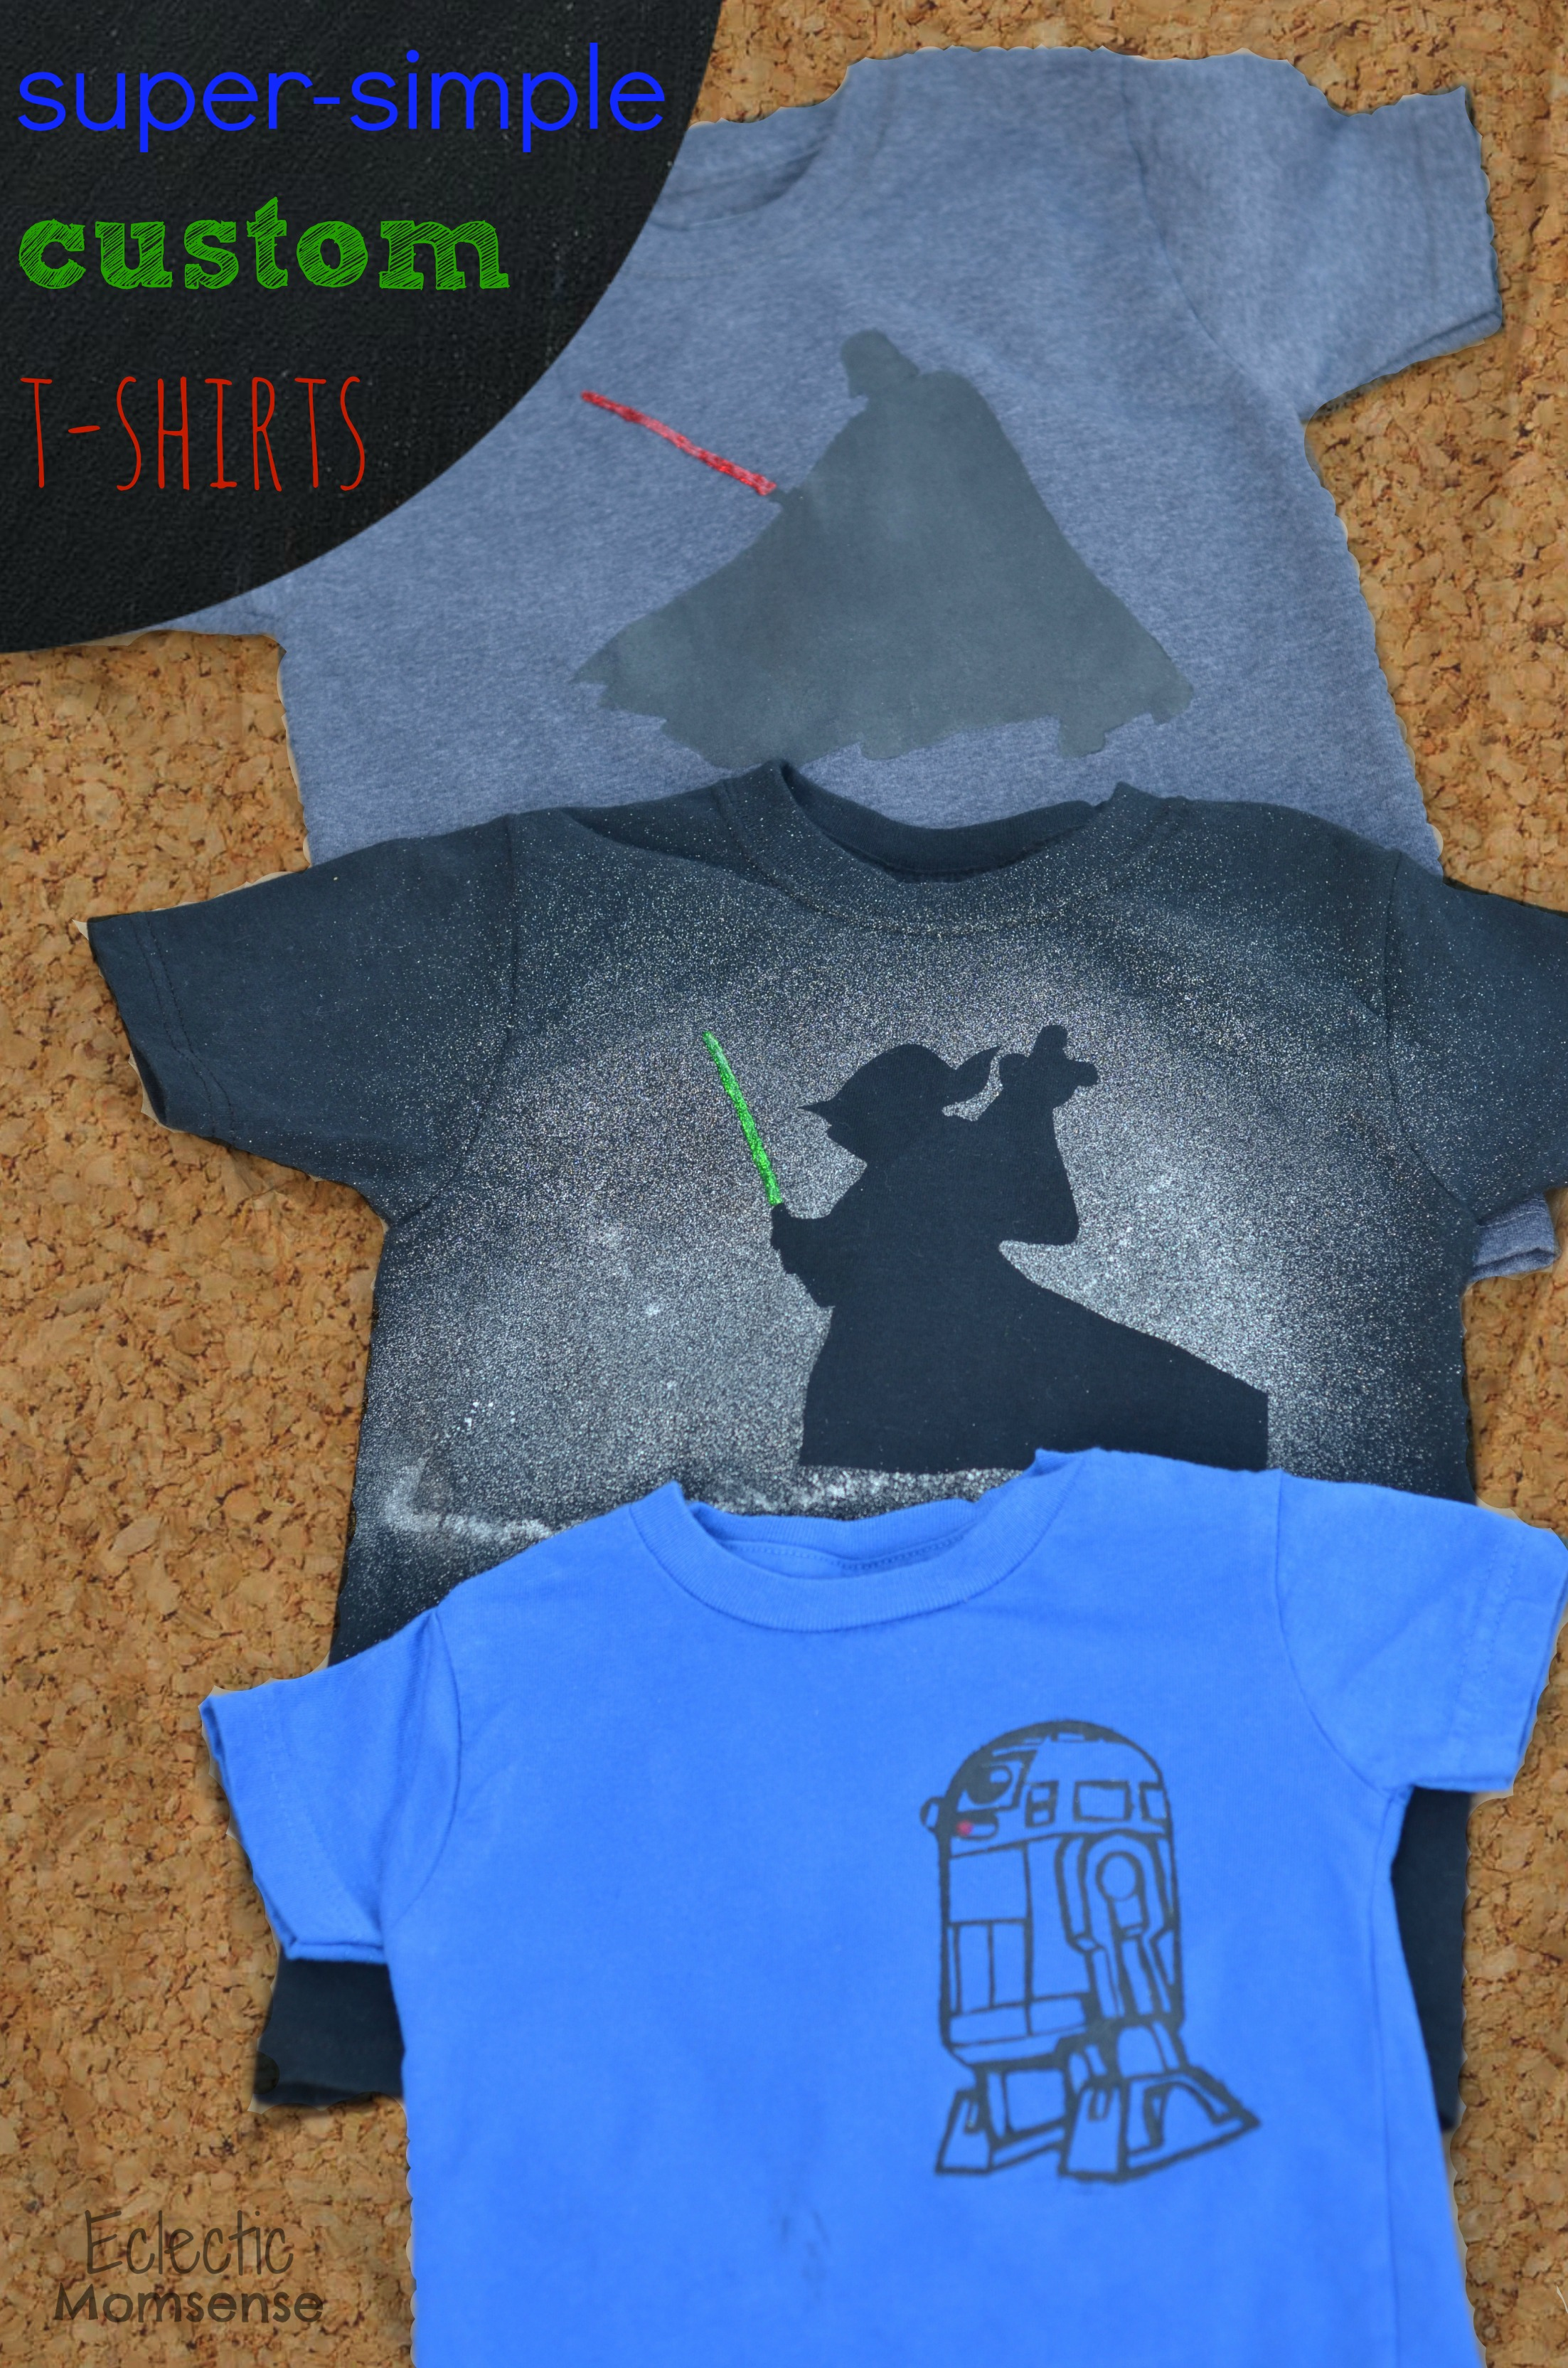 super simple custom star wars t shirts eclectic momsense